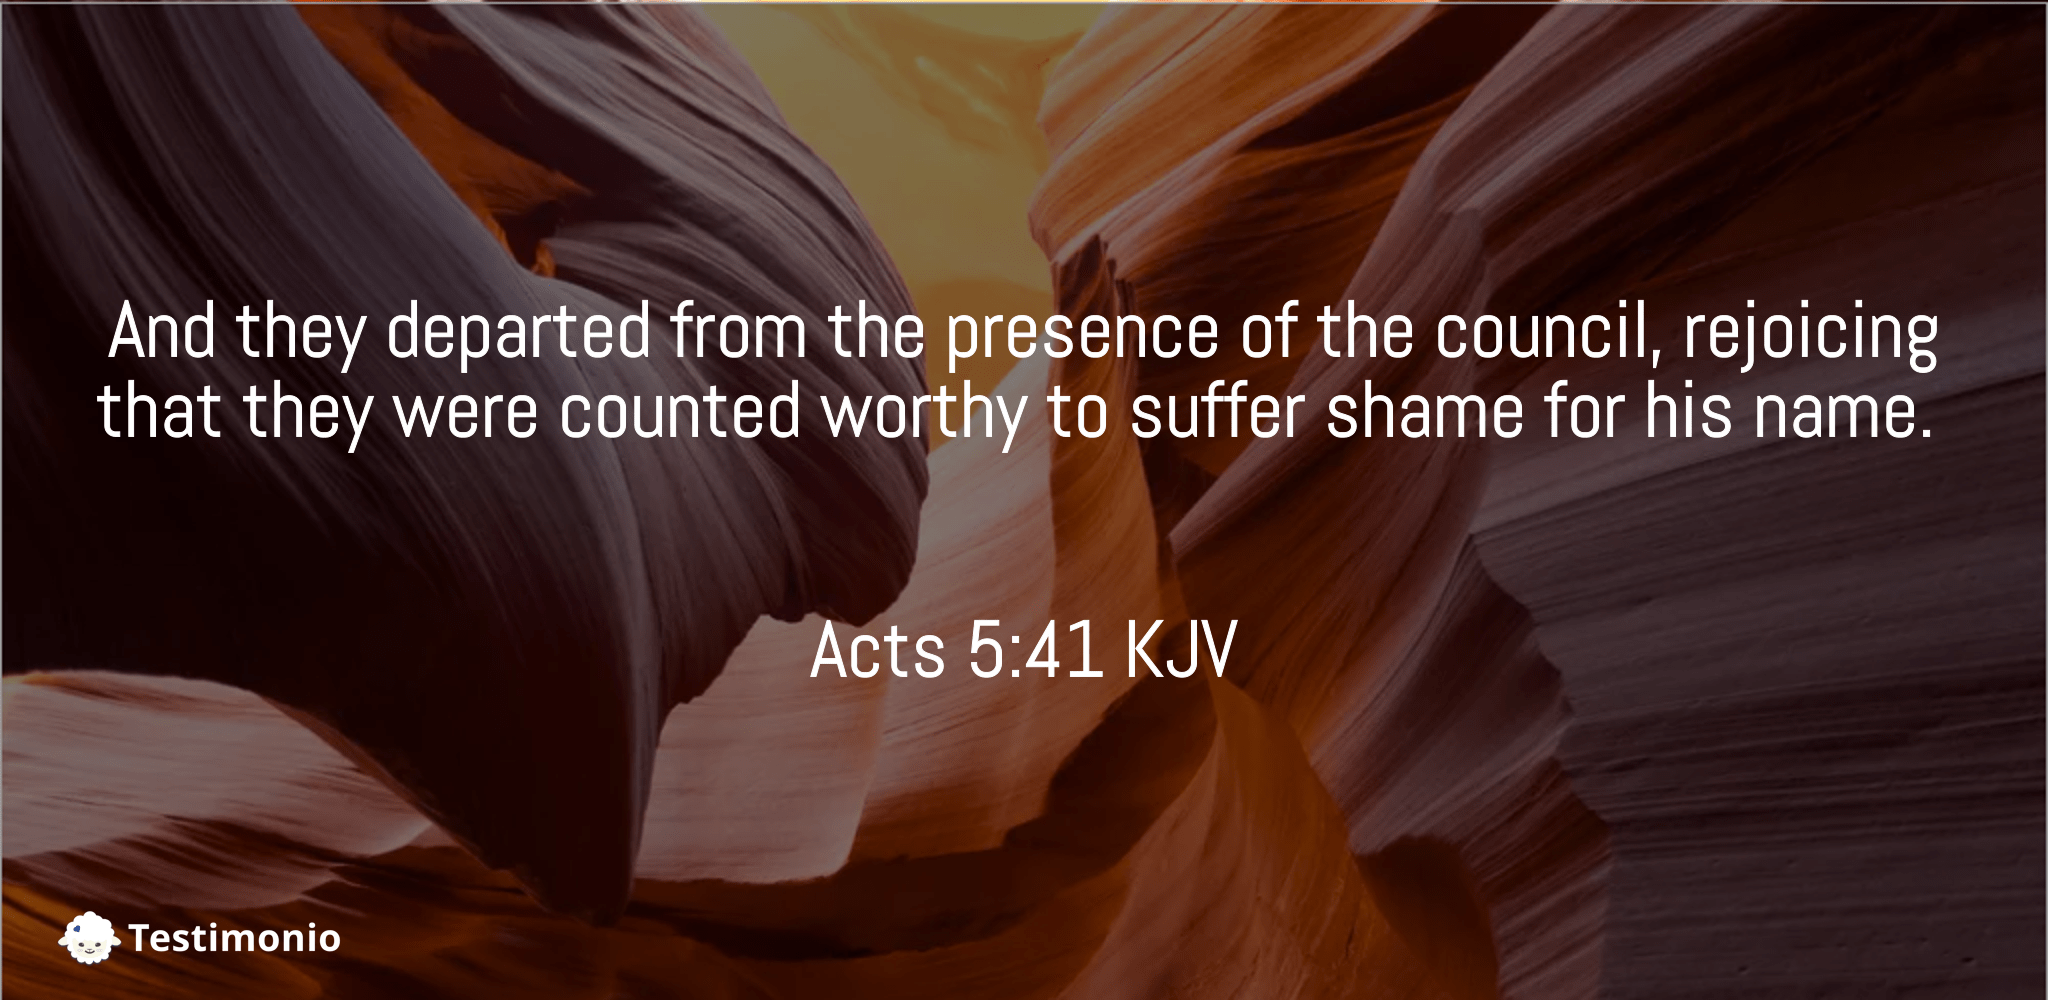 Acts 5:41